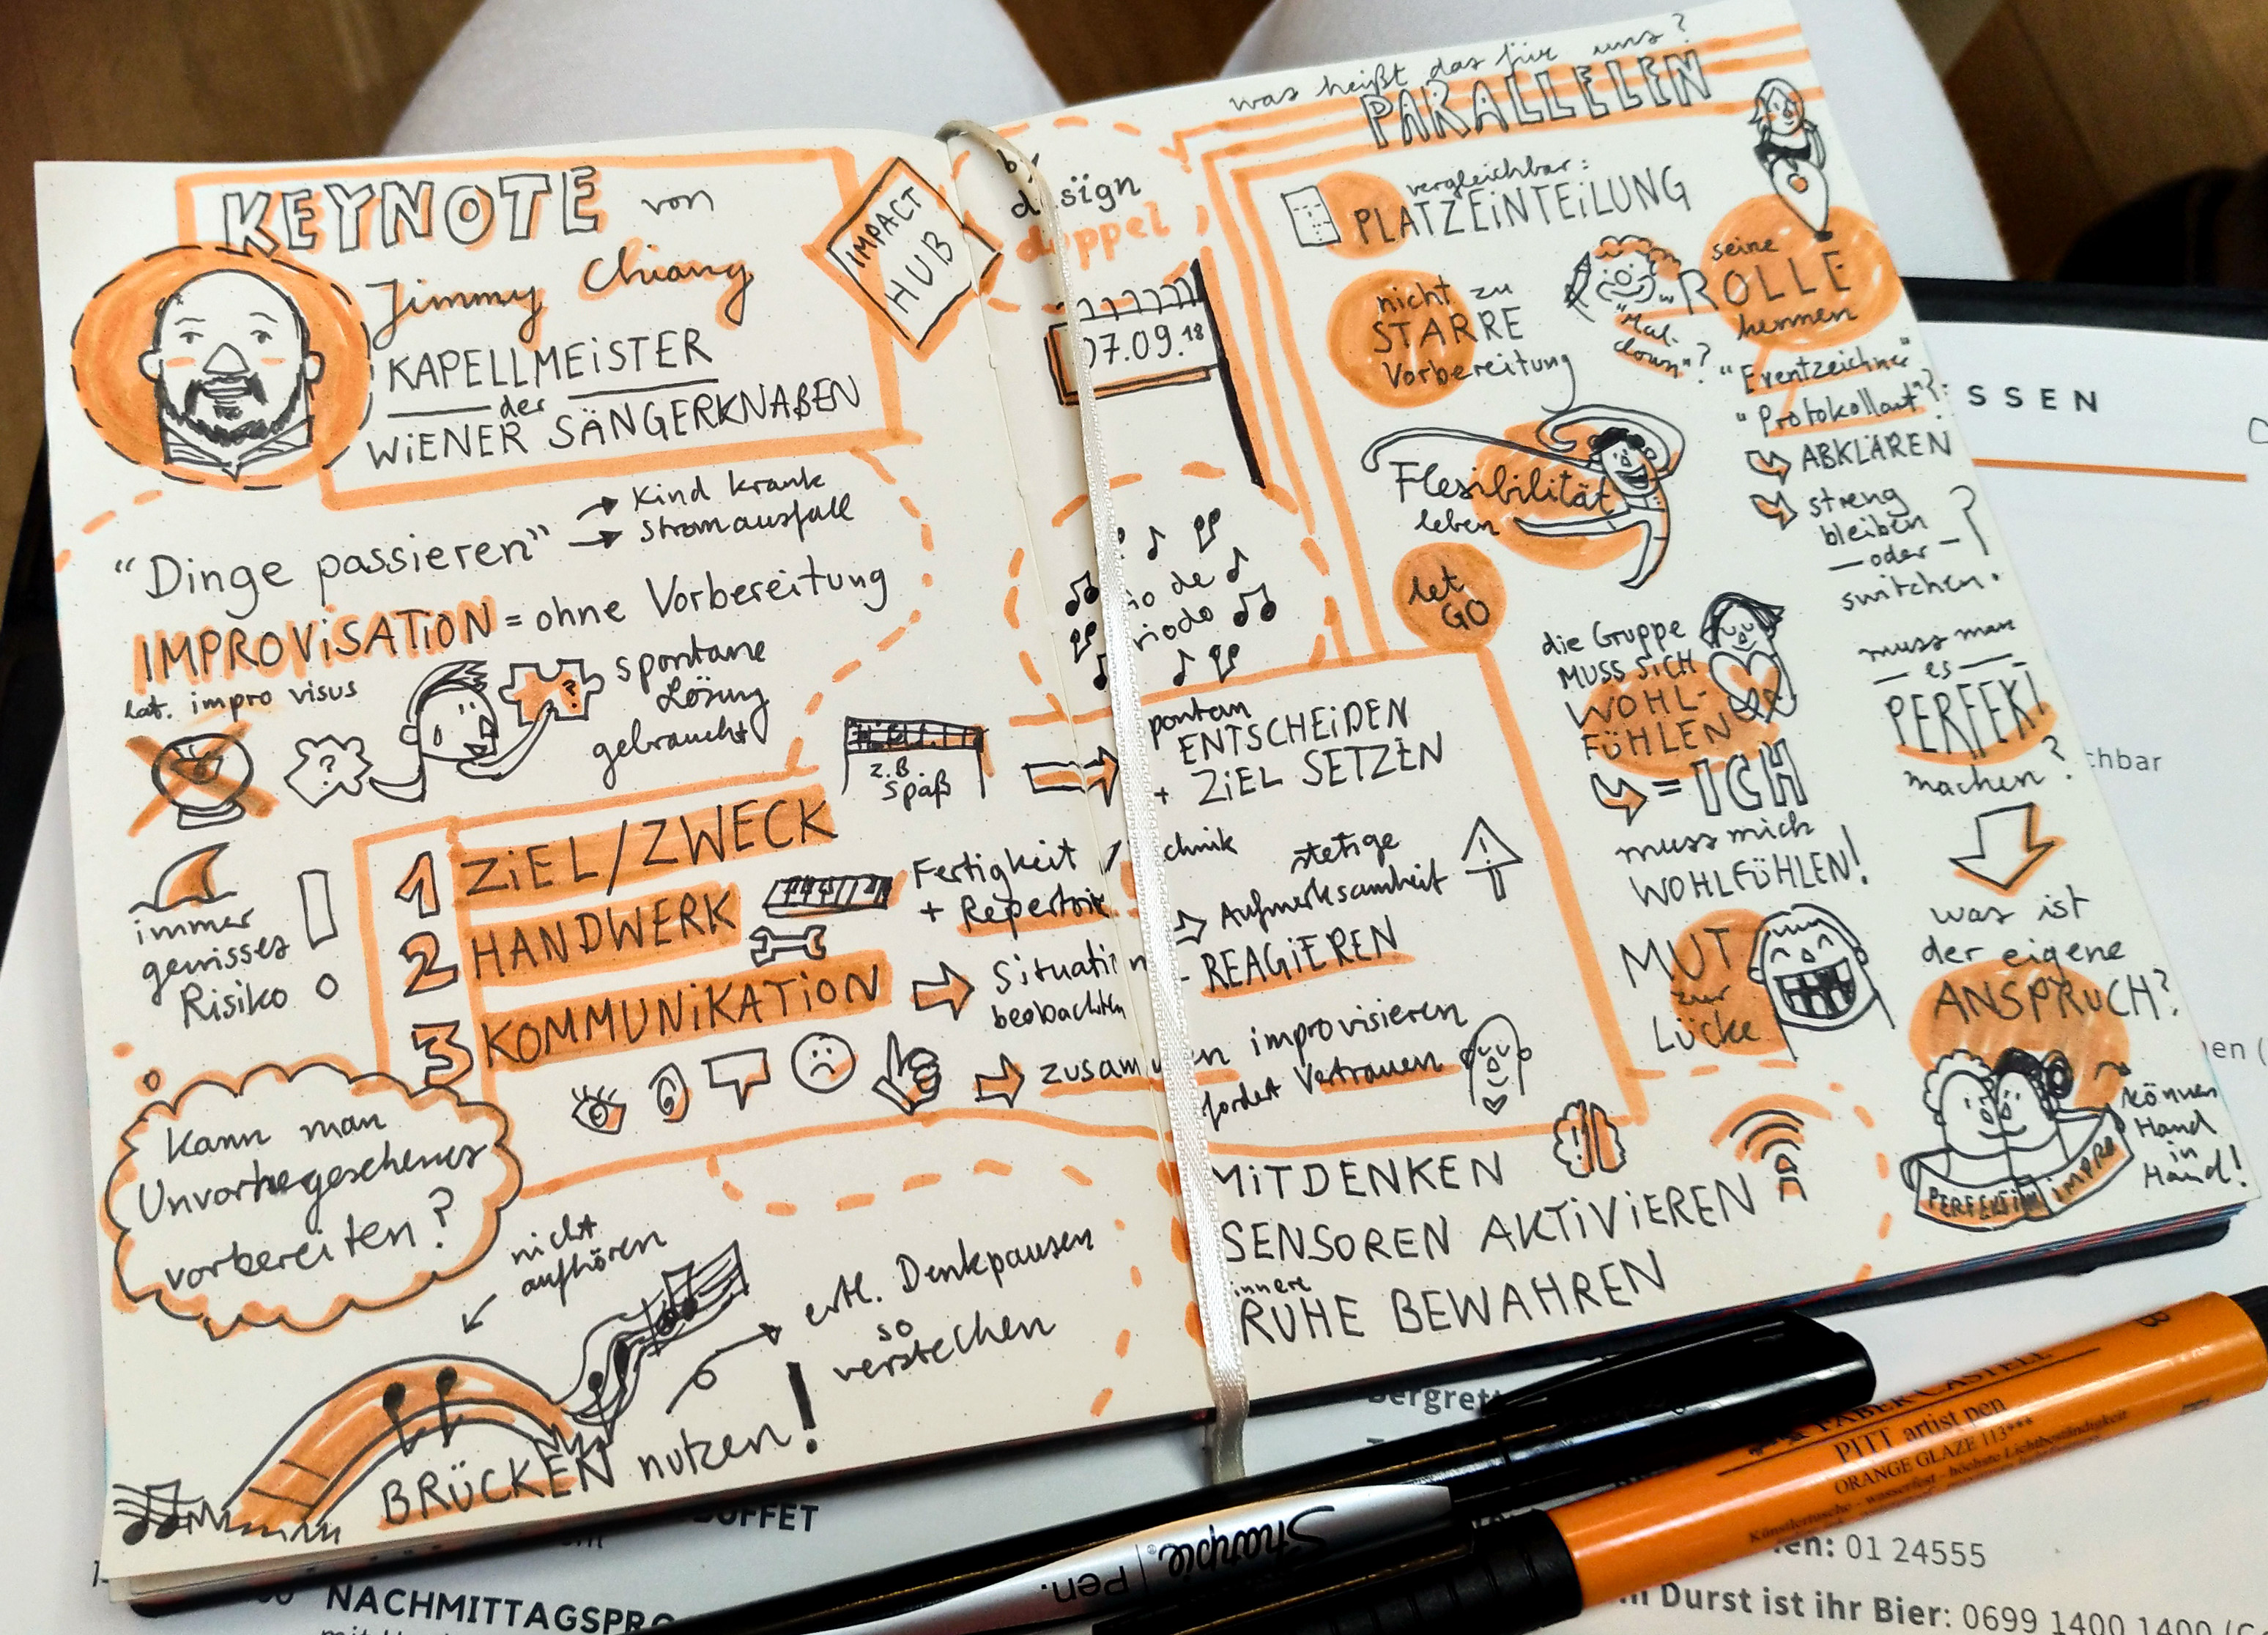 Keynote Sketchnote Graphic Recording Improvisation